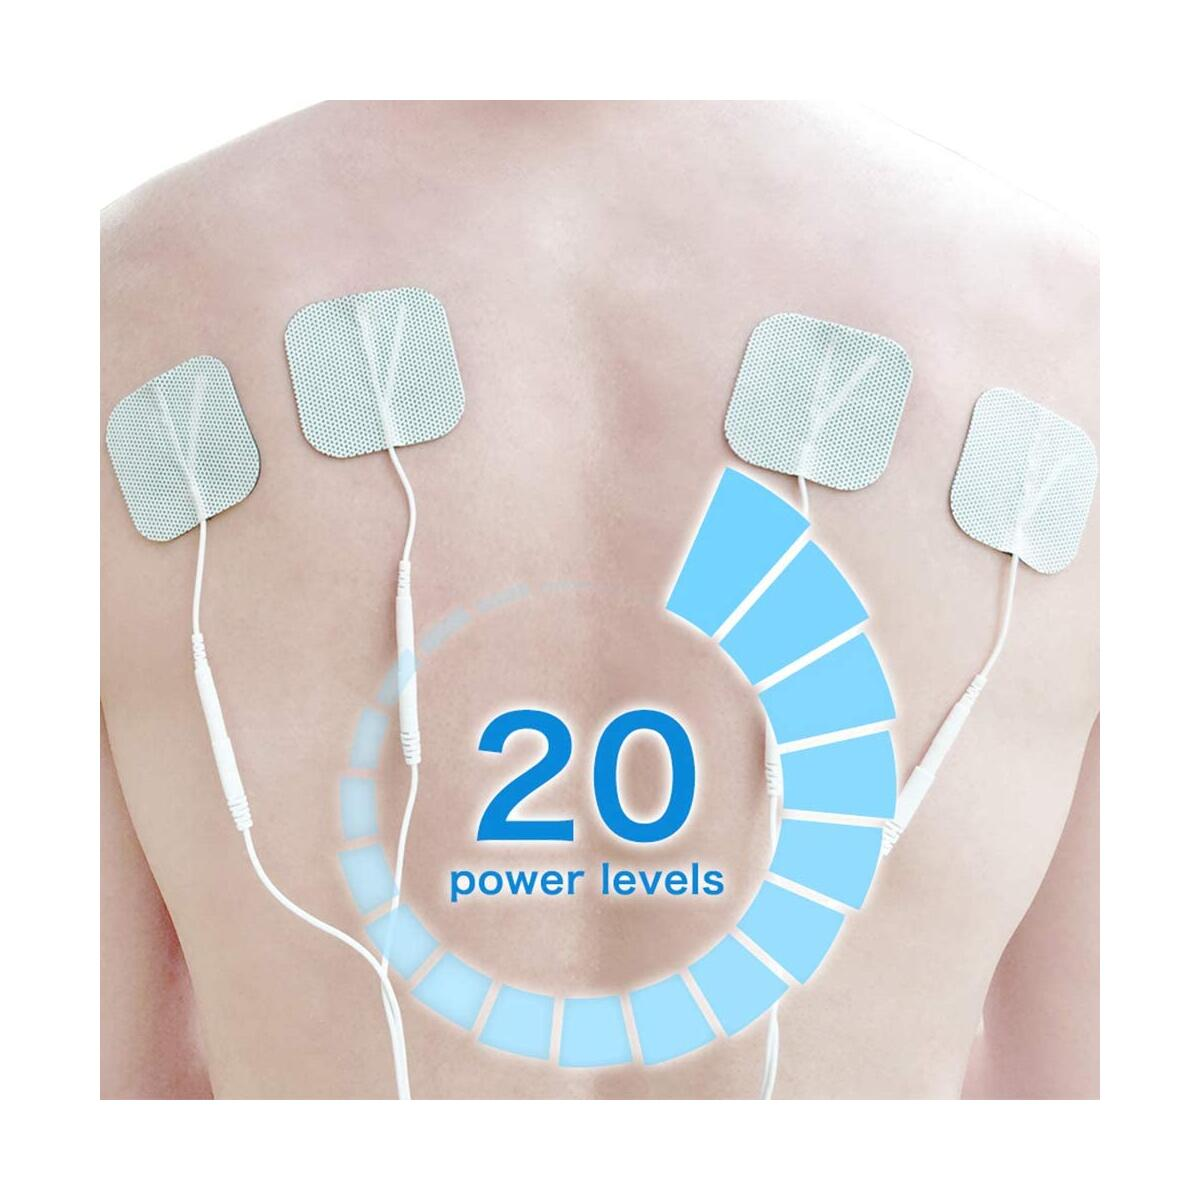 Easy@Home Professional Grade Rechargeable TENS Unit Electronic Pulse Massager,Backlit LCD Display, Professional Grade Powerful Pulse Intensity, 510K Cleared, FSA Eligible OTC Home Use, EHE012PRO